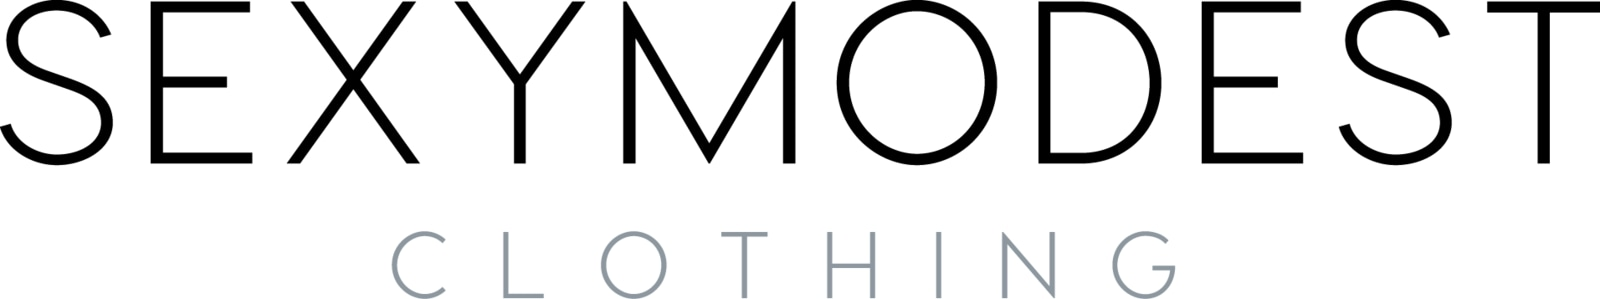 SexyModest Boutique